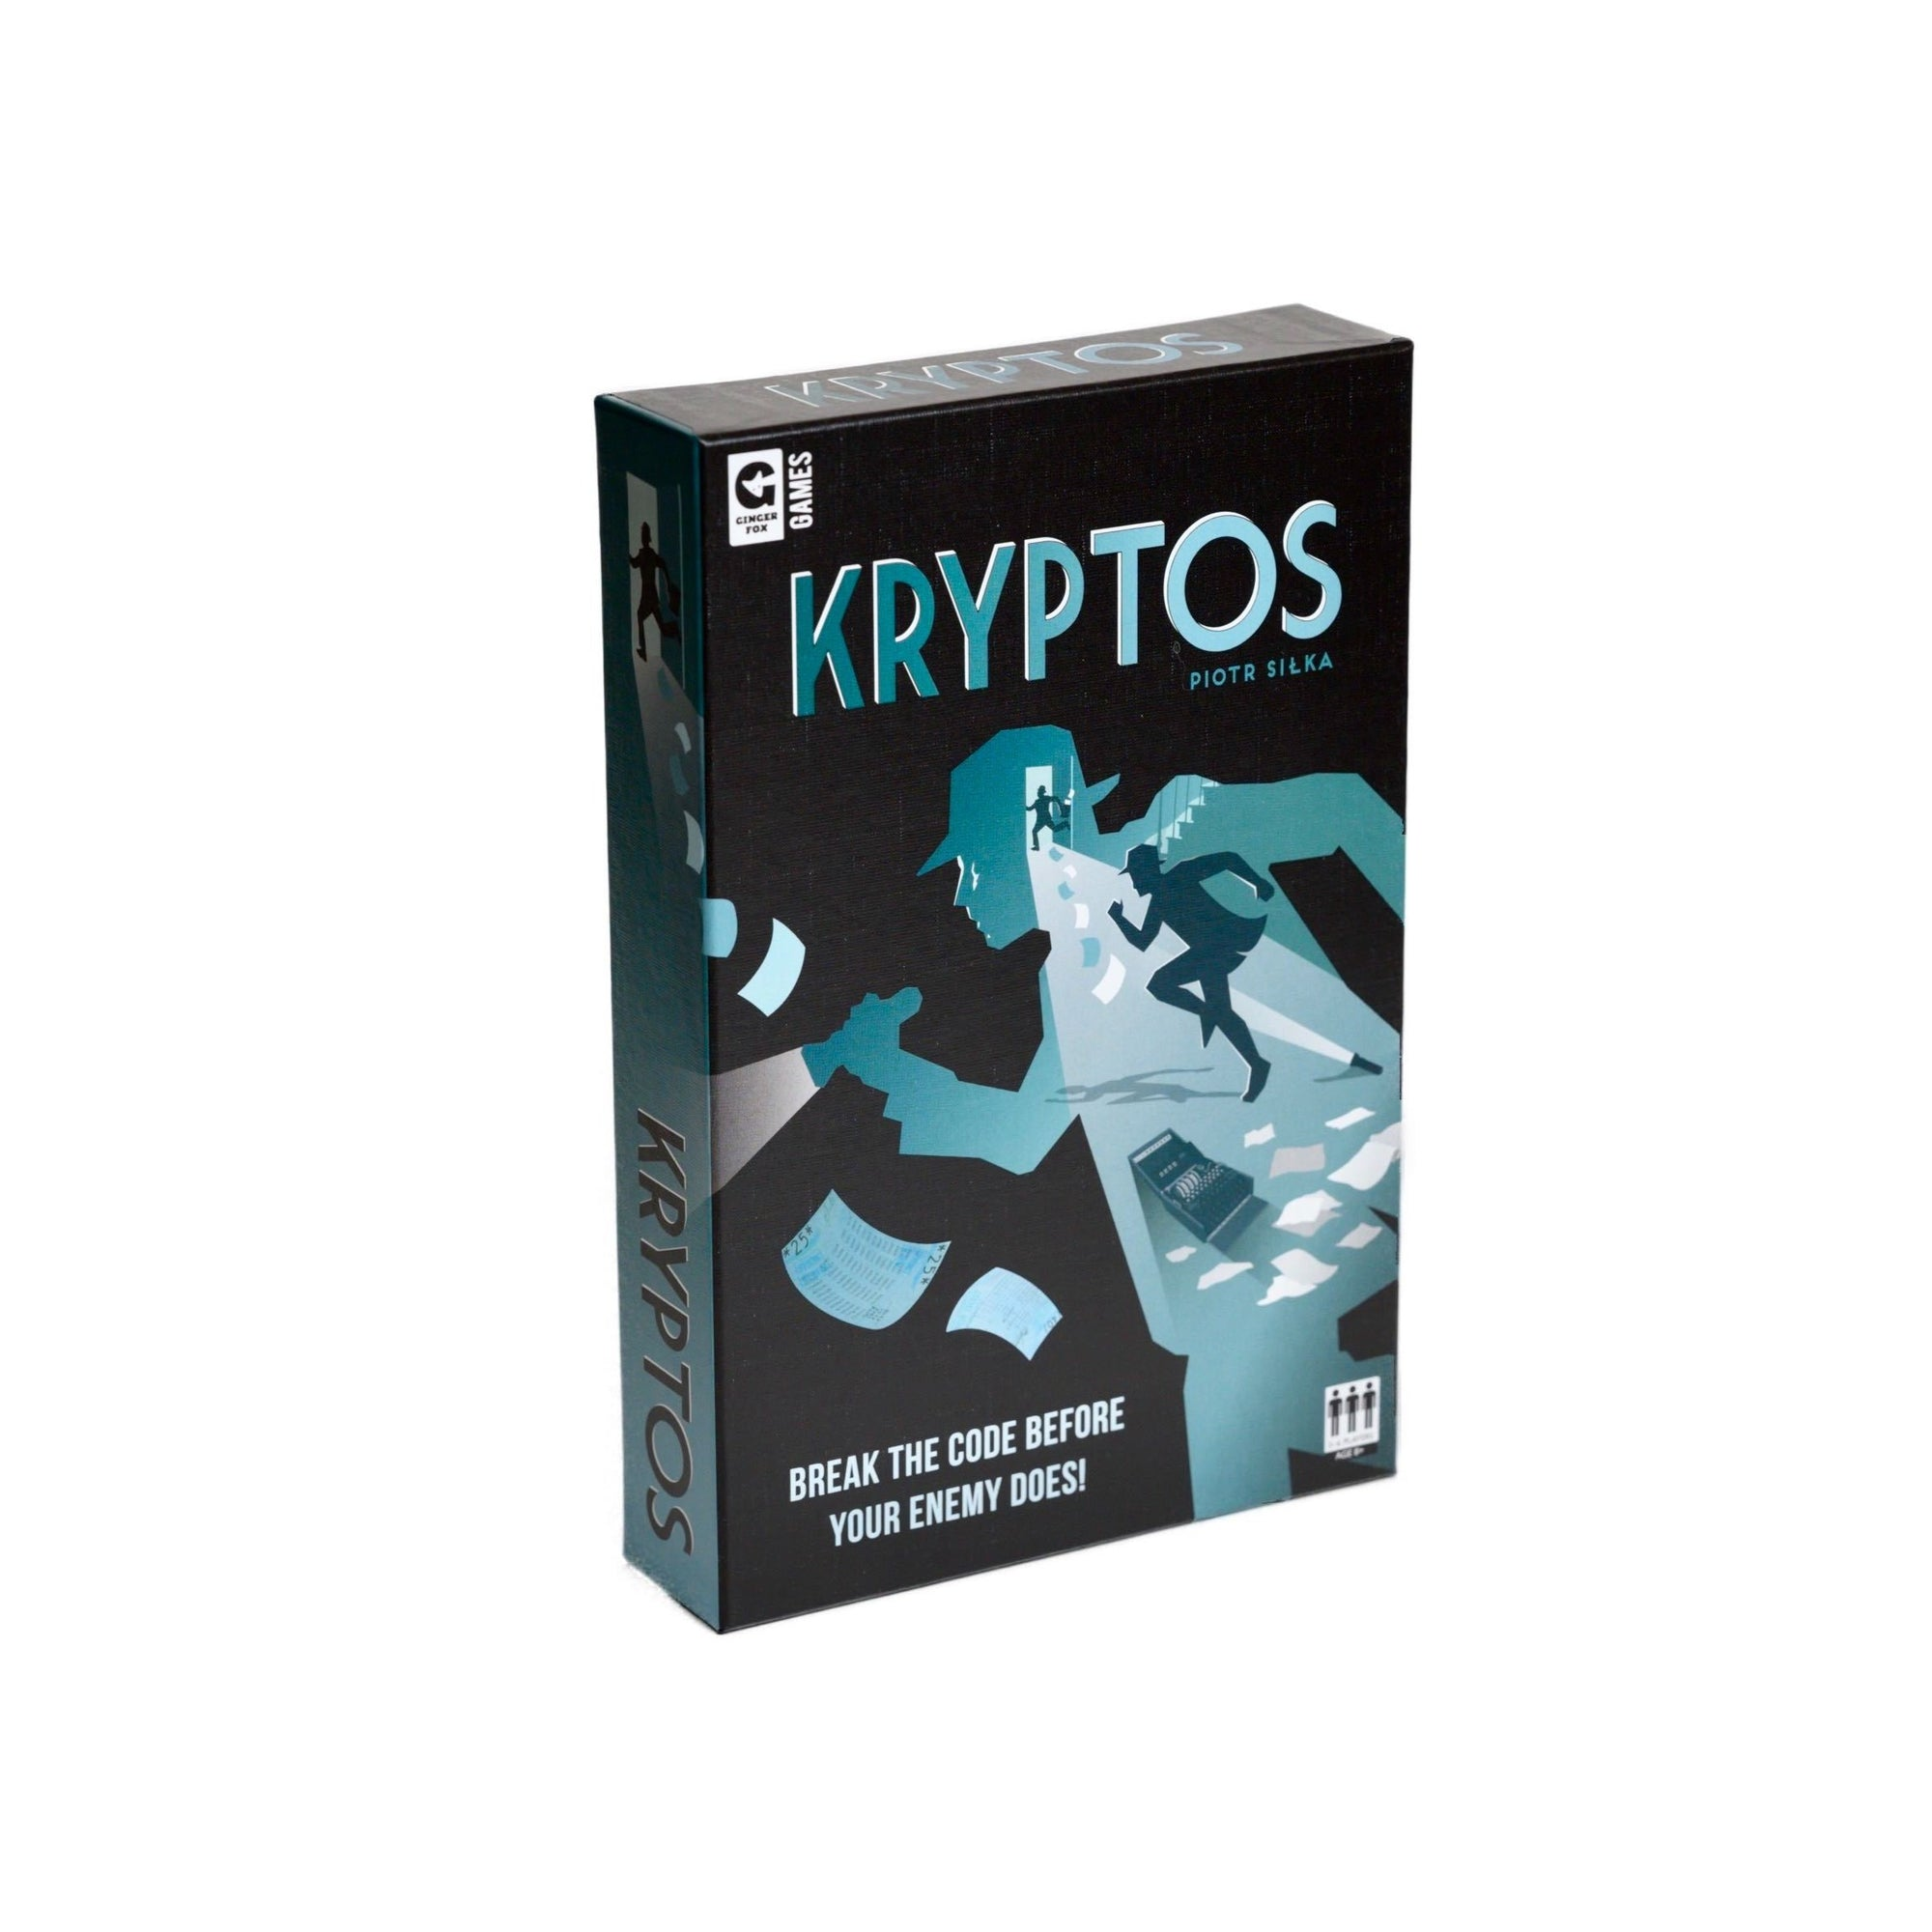 "Kryptos - Front cover view of board game Kryptos by Piotr Silka, ""Break the code before your enemy does"""